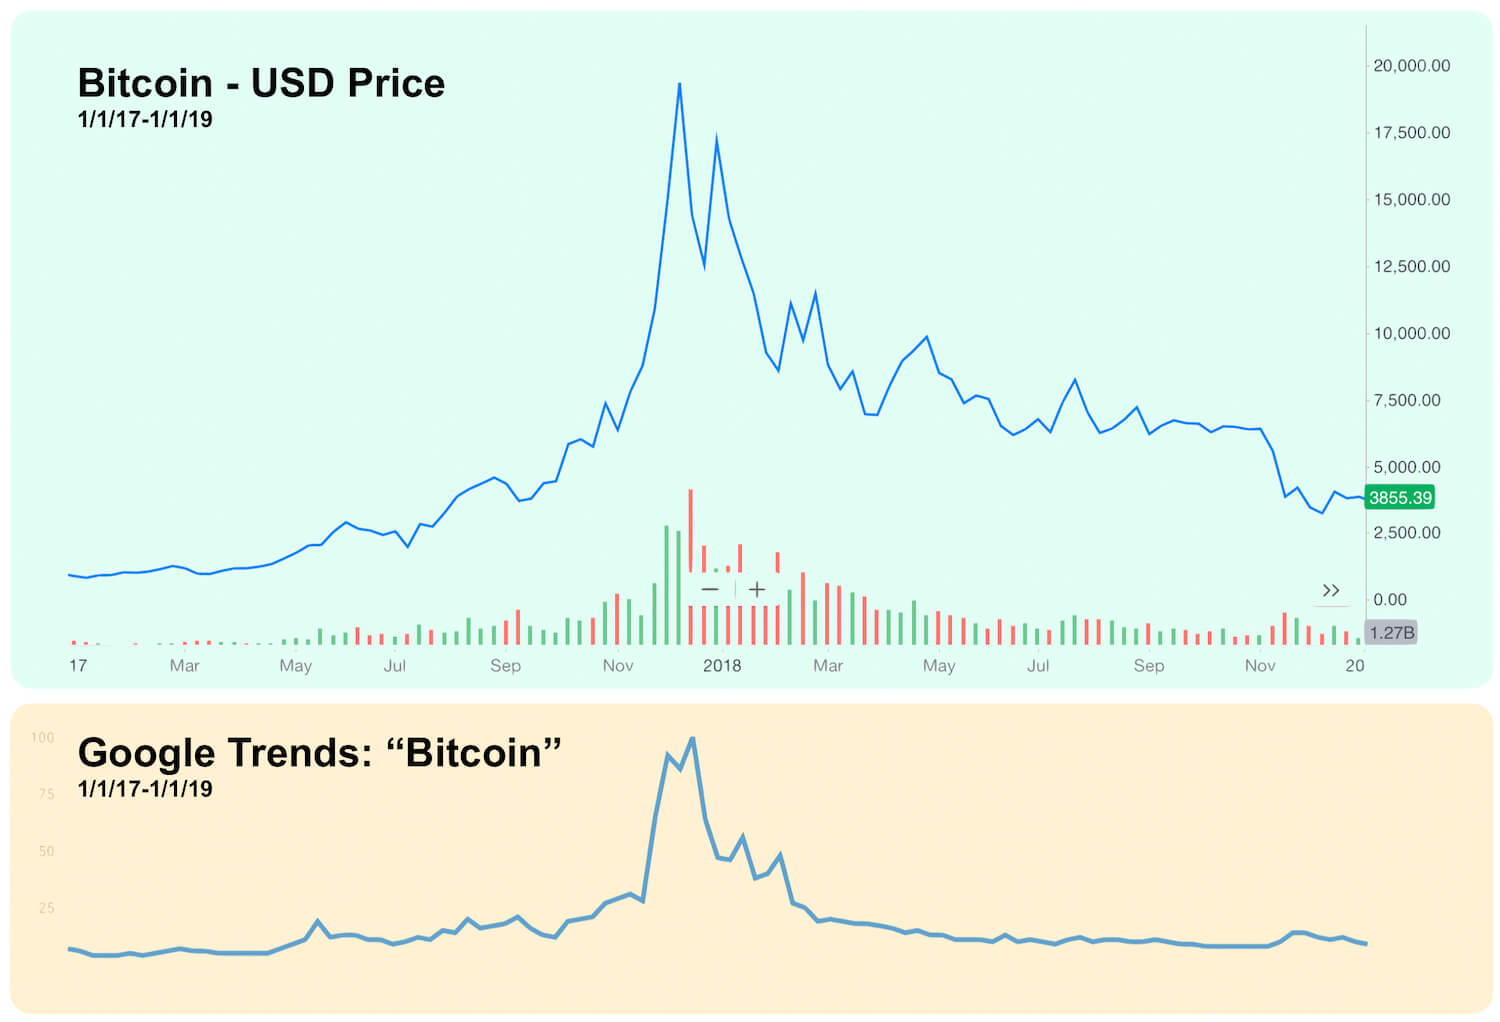 Bitcoin USD Price vs Google Trends for Bitcoin - Searches During The Bitcoin Bubble